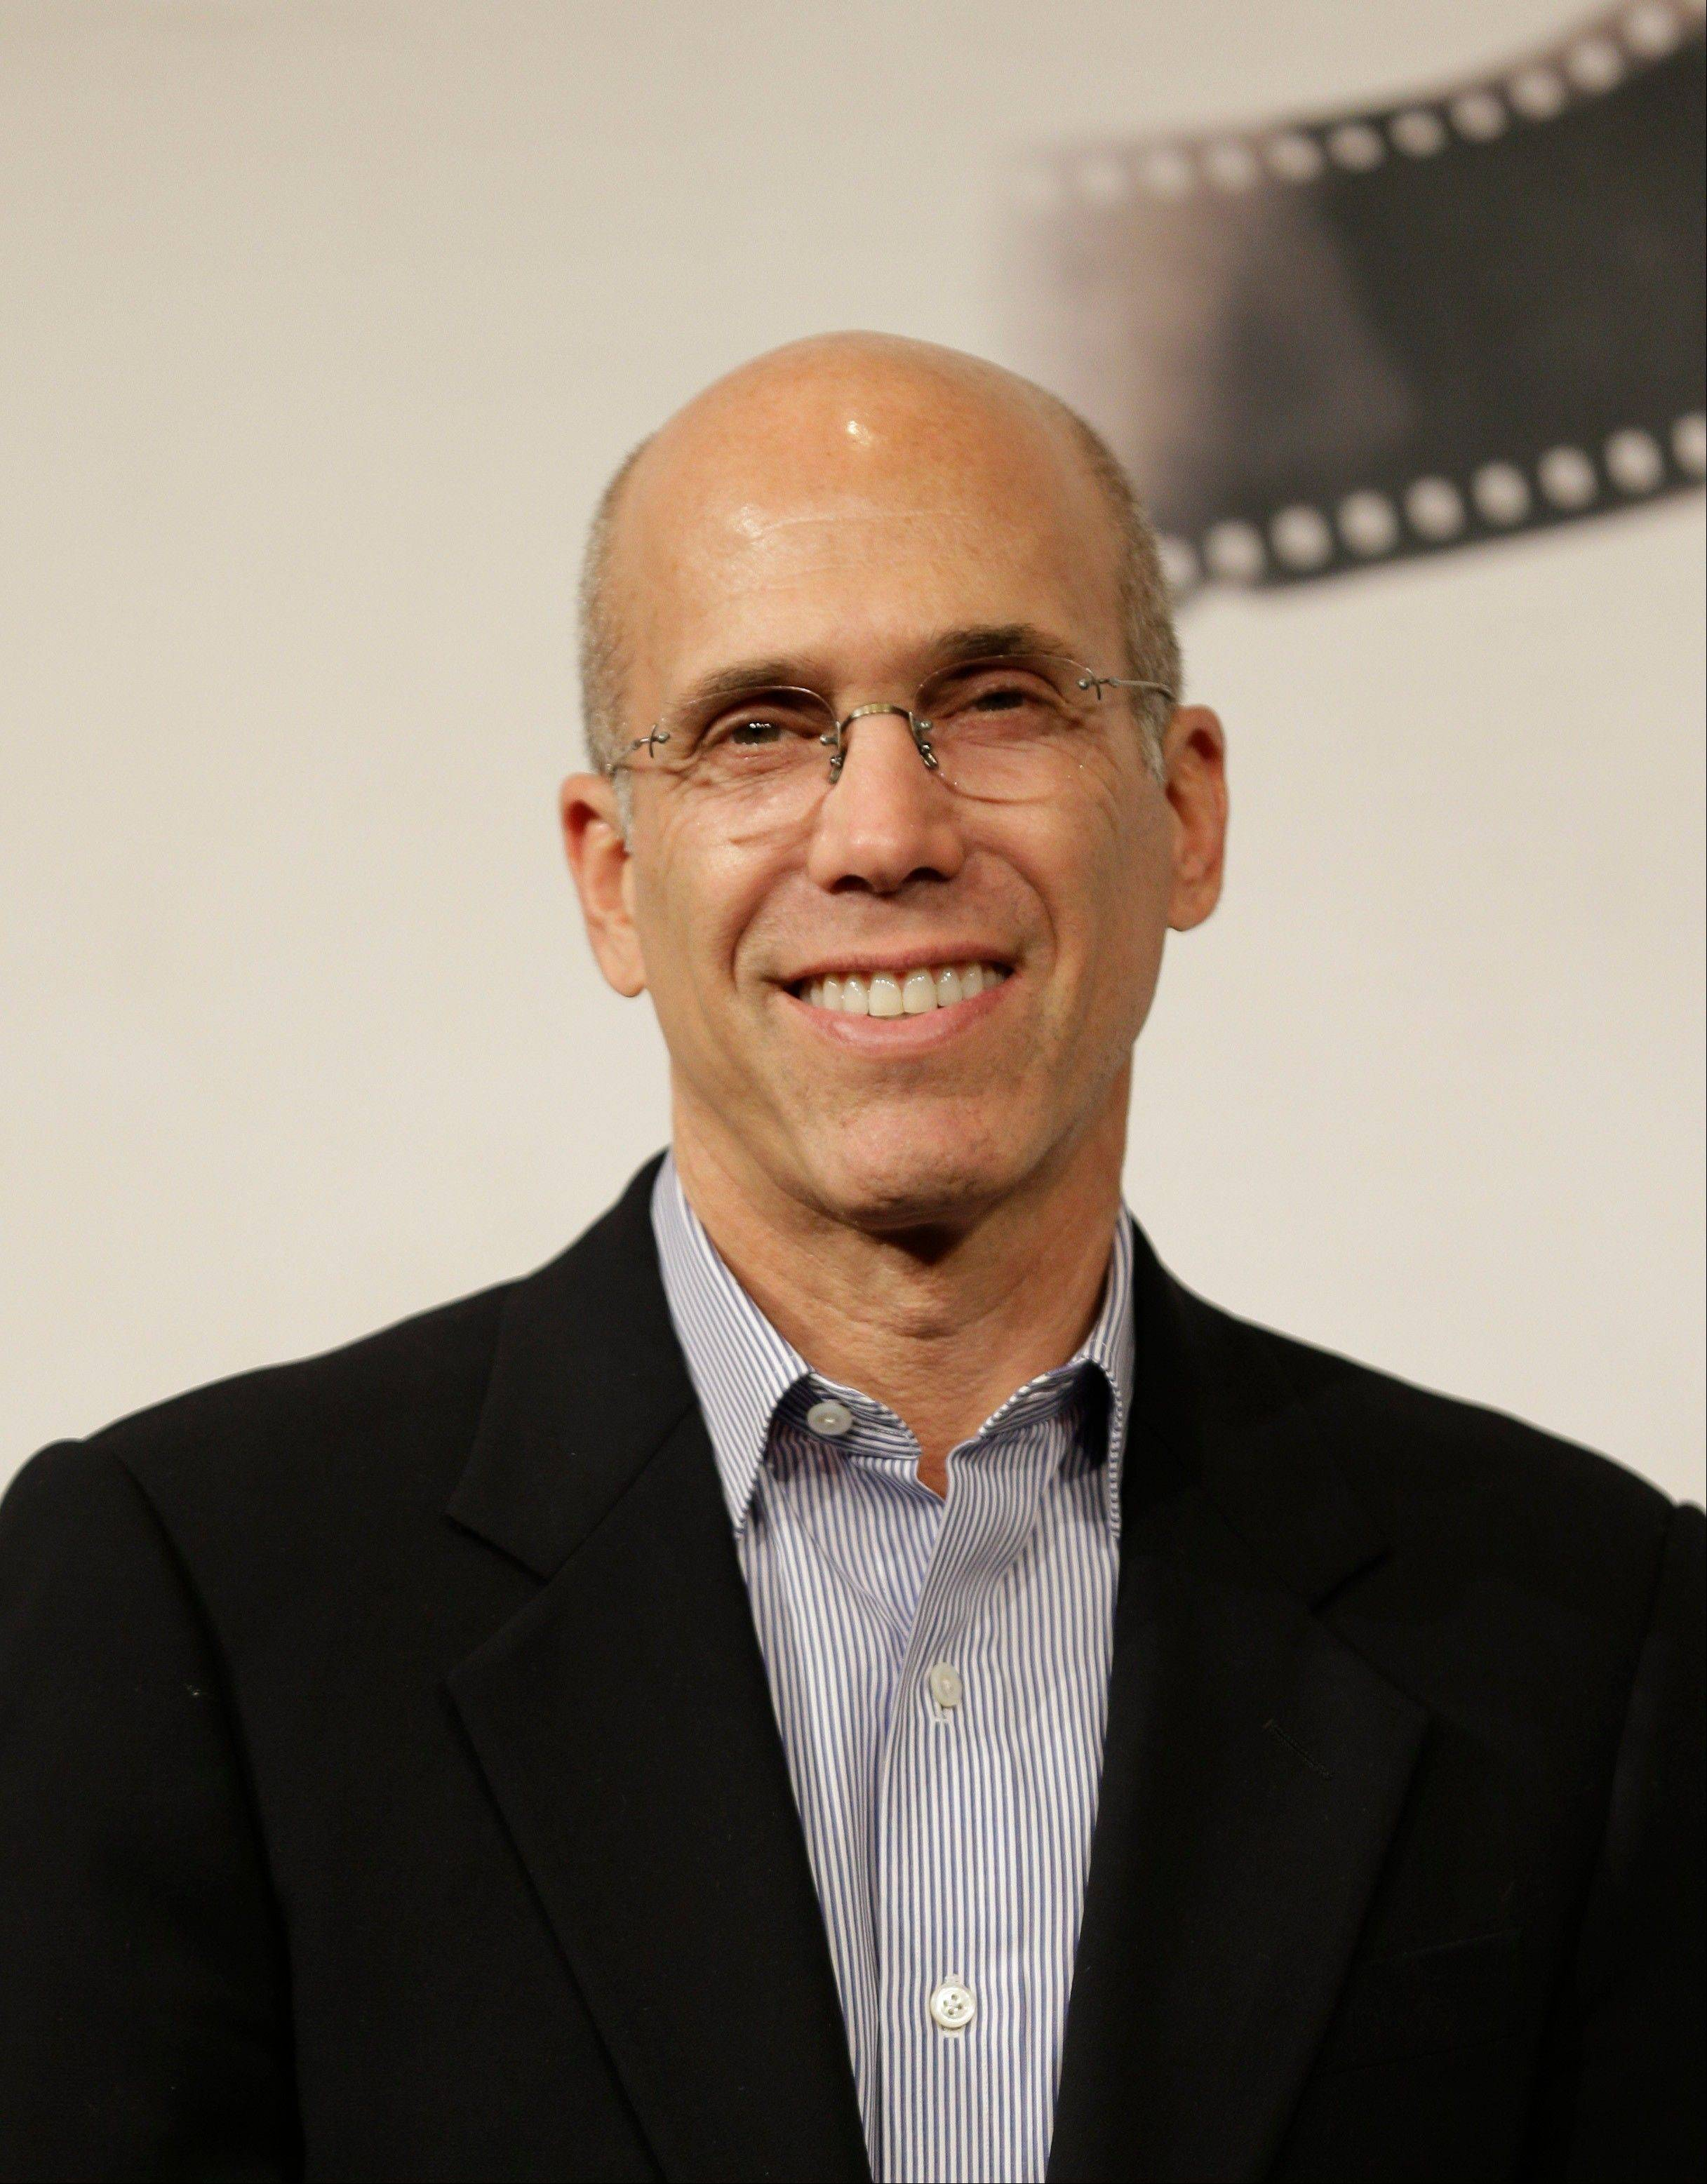 DreamWorks Animation CEO Jeffrey Katzenberg will accept their Oscar statuettes at the 4th annual Governors Awards from the Academy of Motion Picture Arts and Sciences� Board of Governors at a private ceremony Saturday.